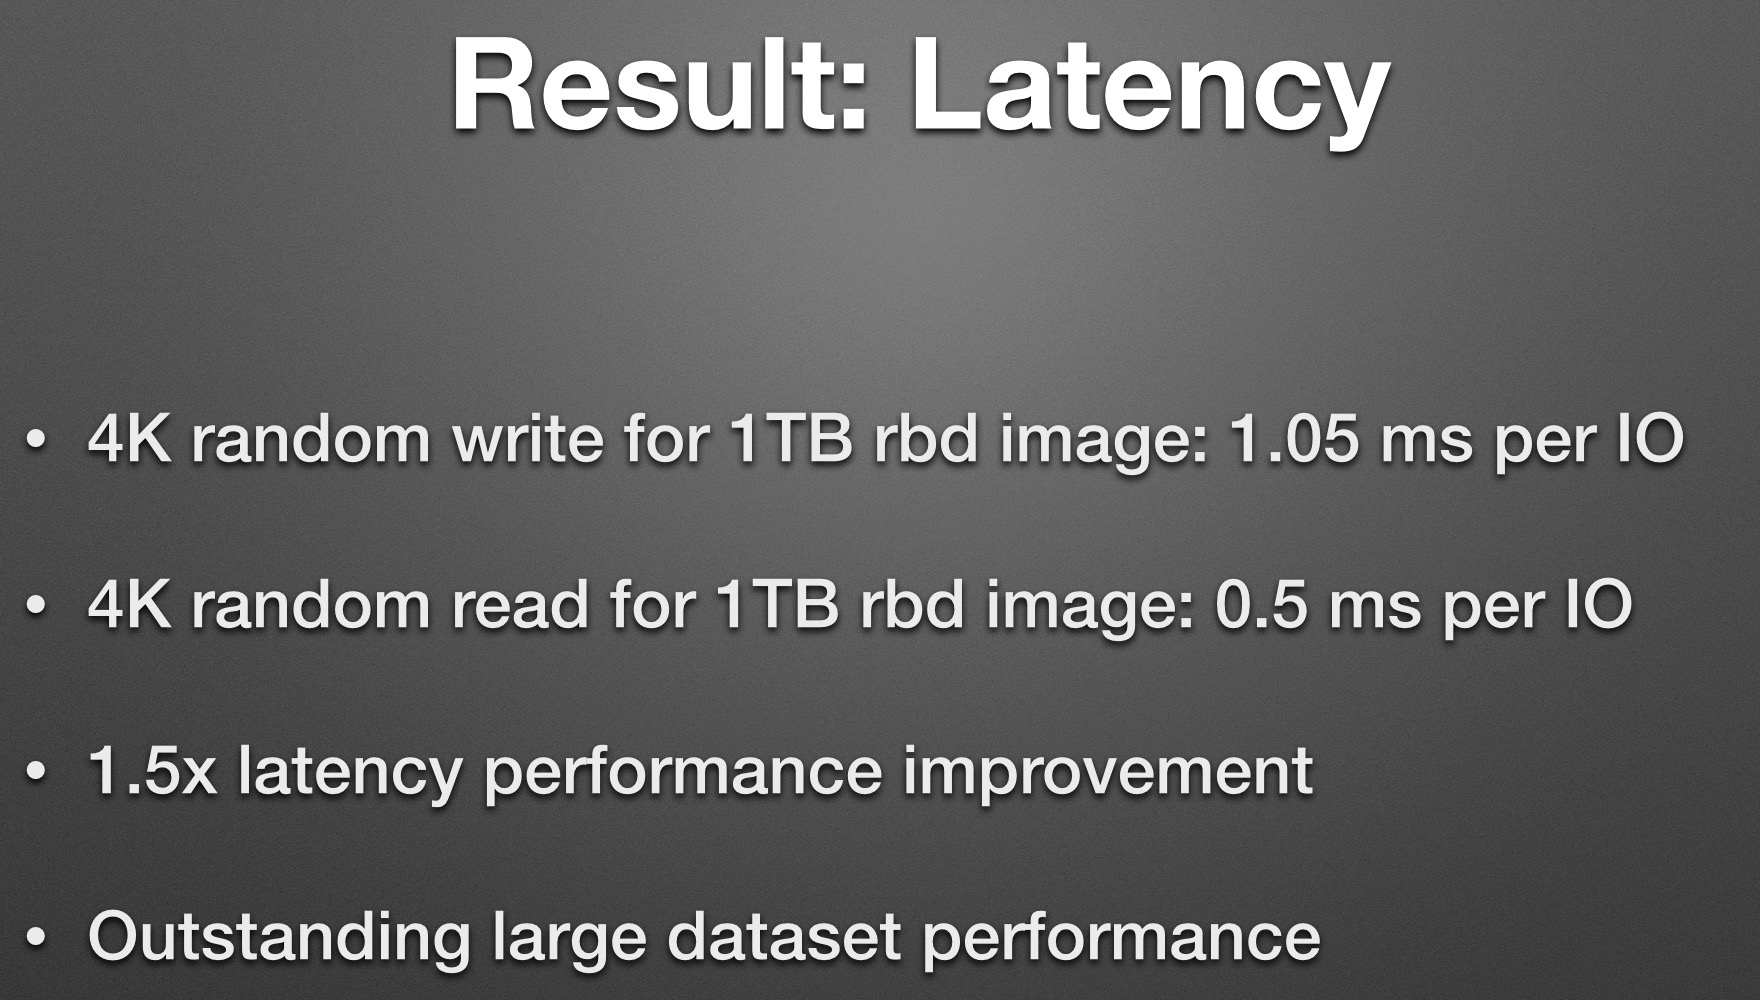 ss-result-latency